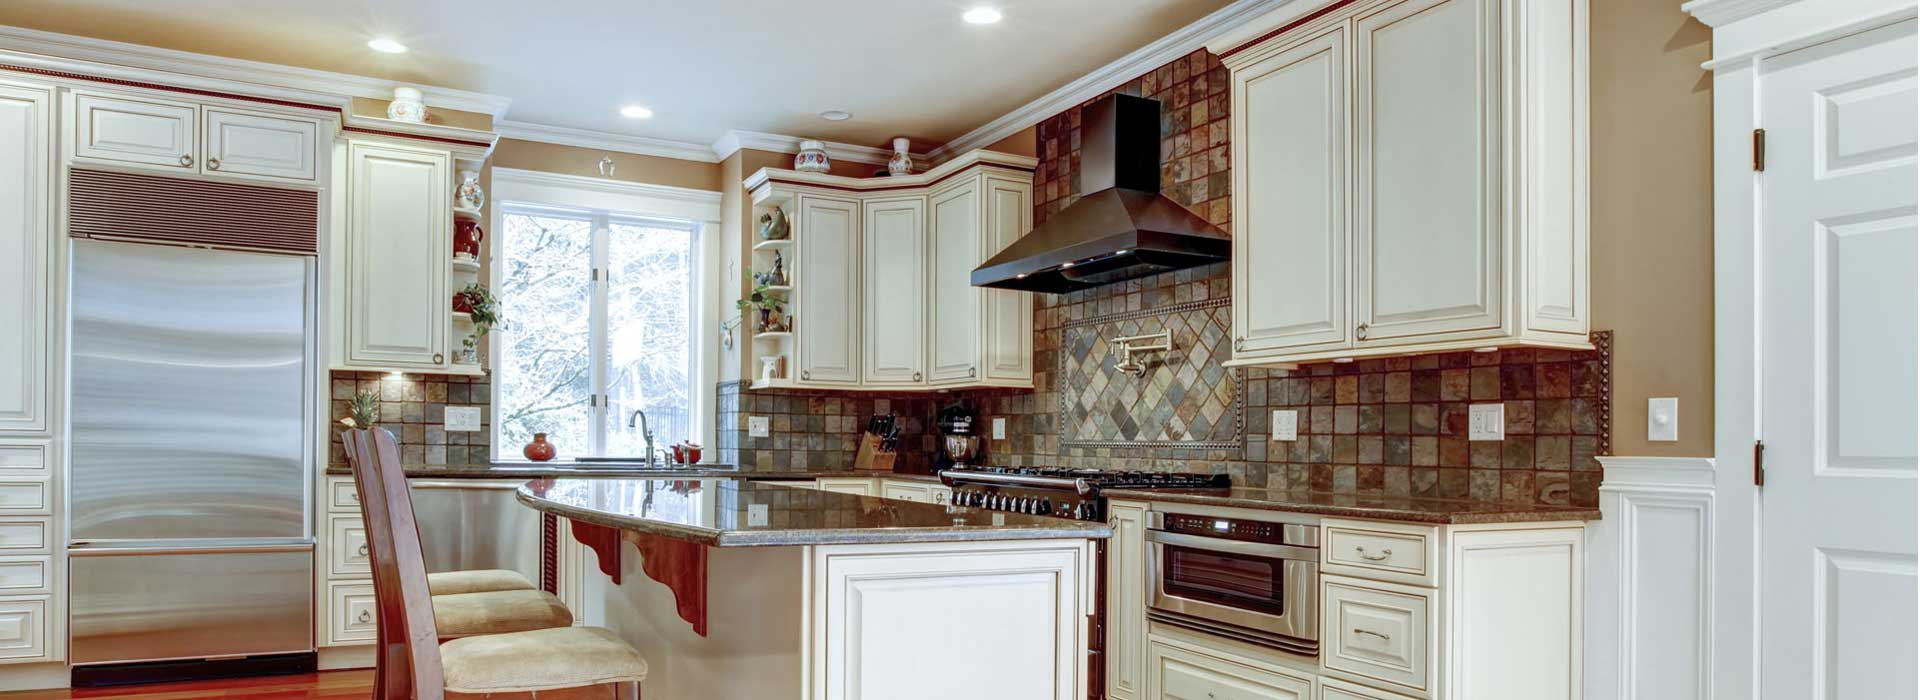 high quality kitchen cabinets island light pendants cabinet refacing - new look ny